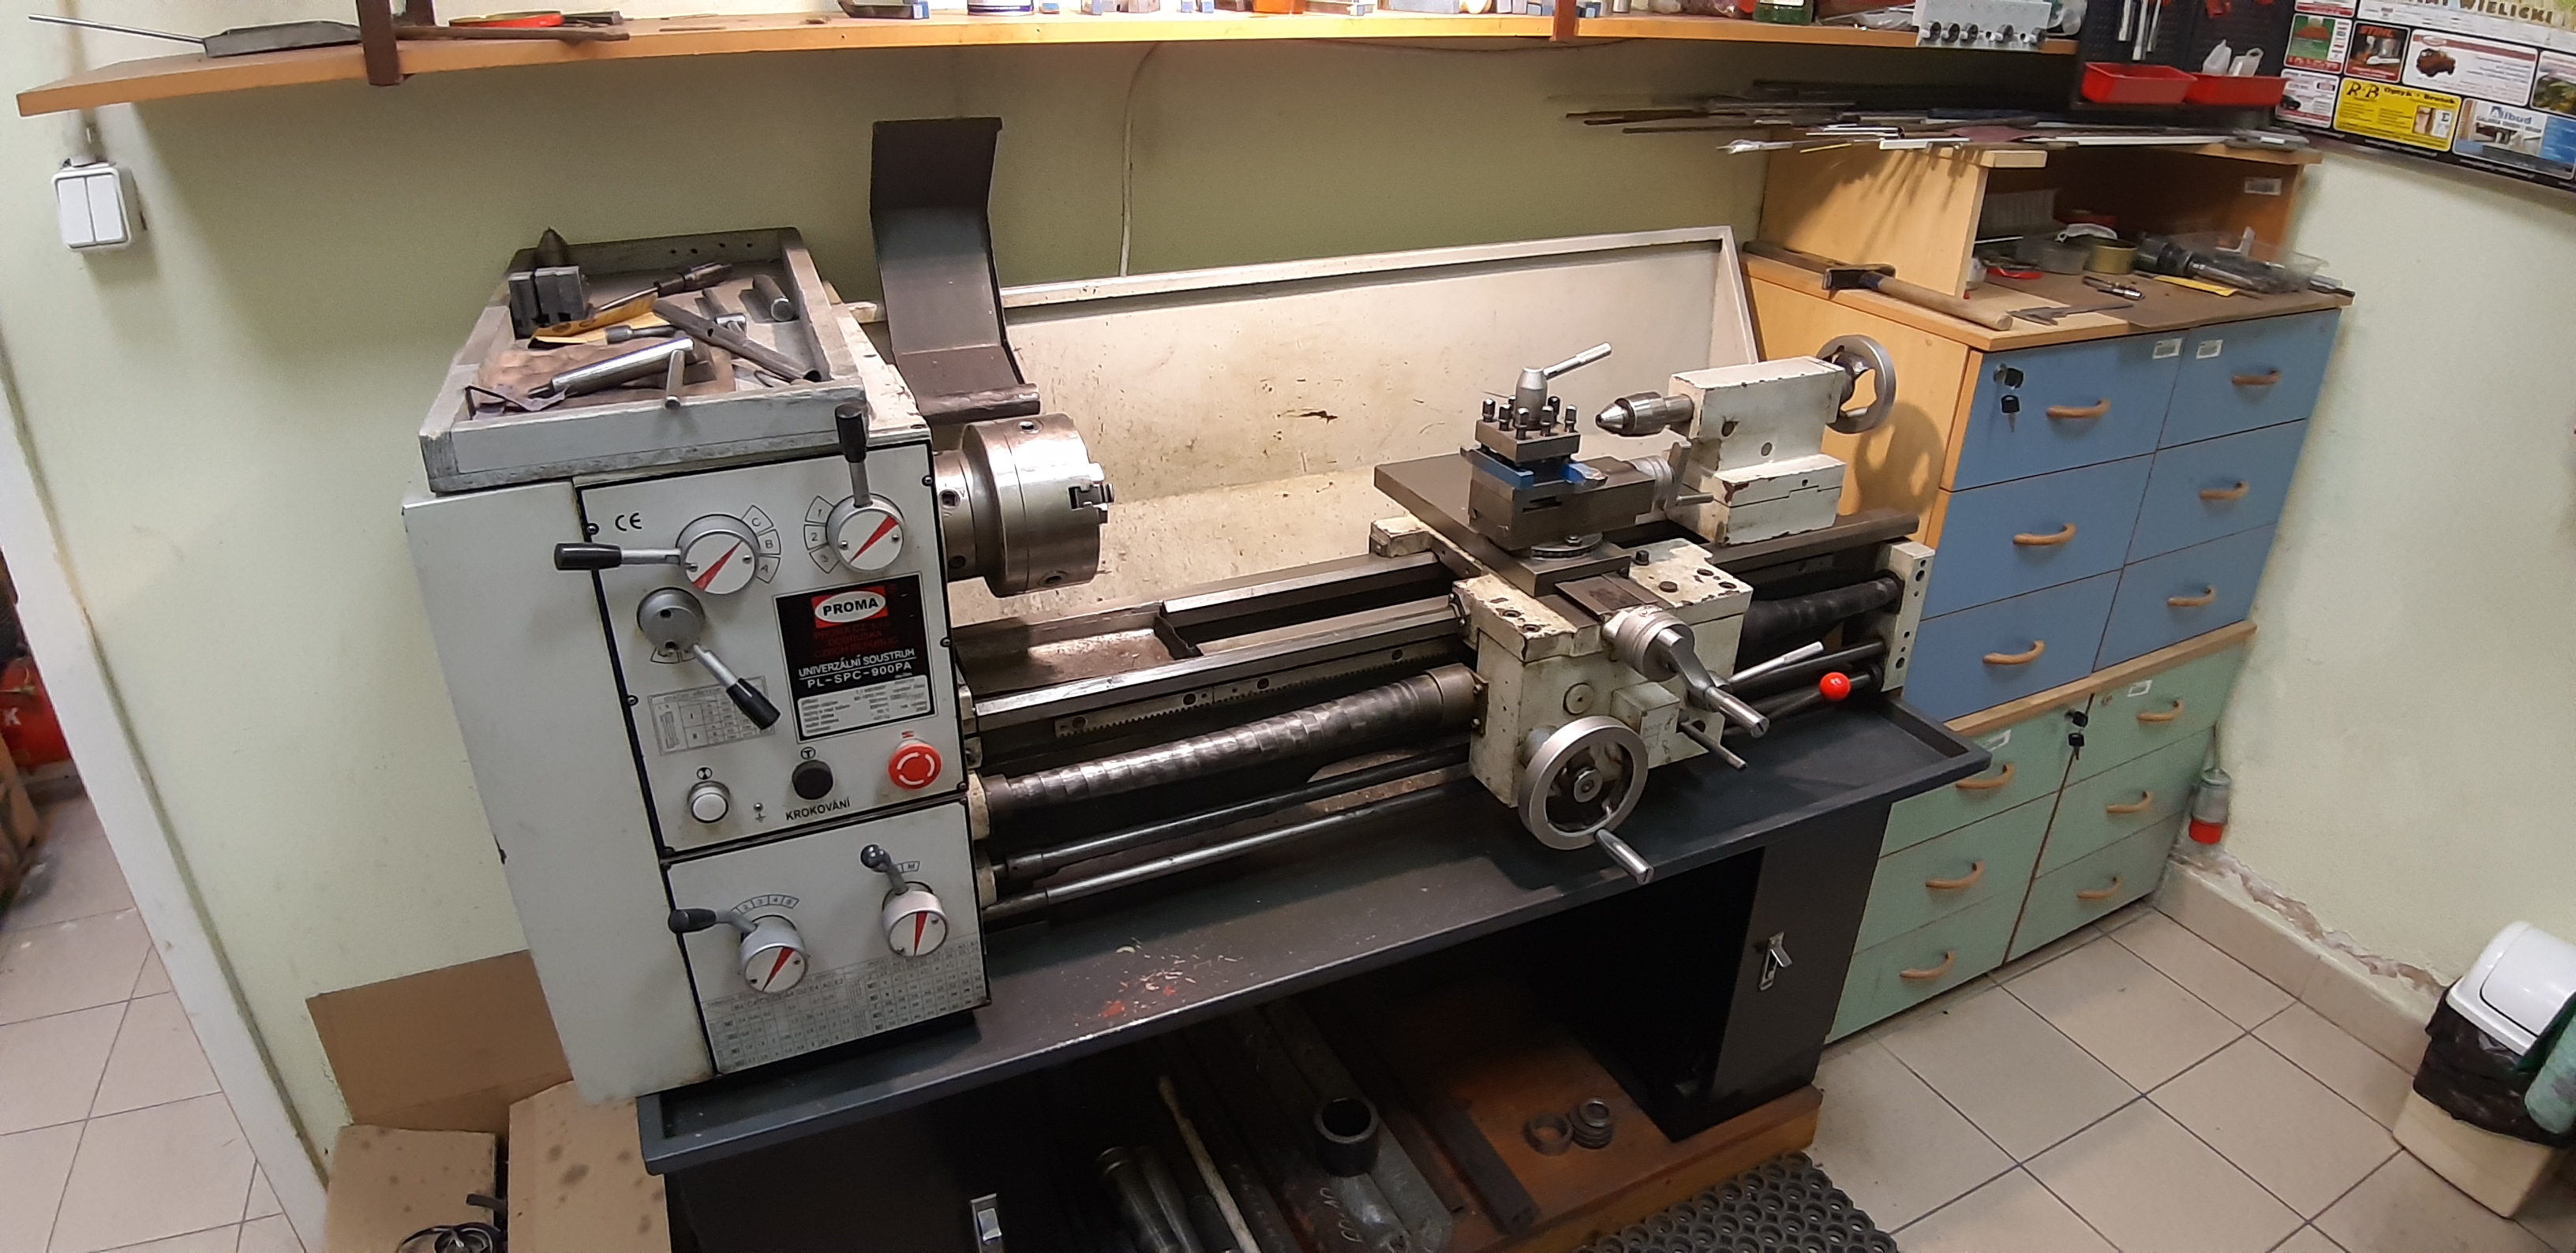 Lathe in real-life